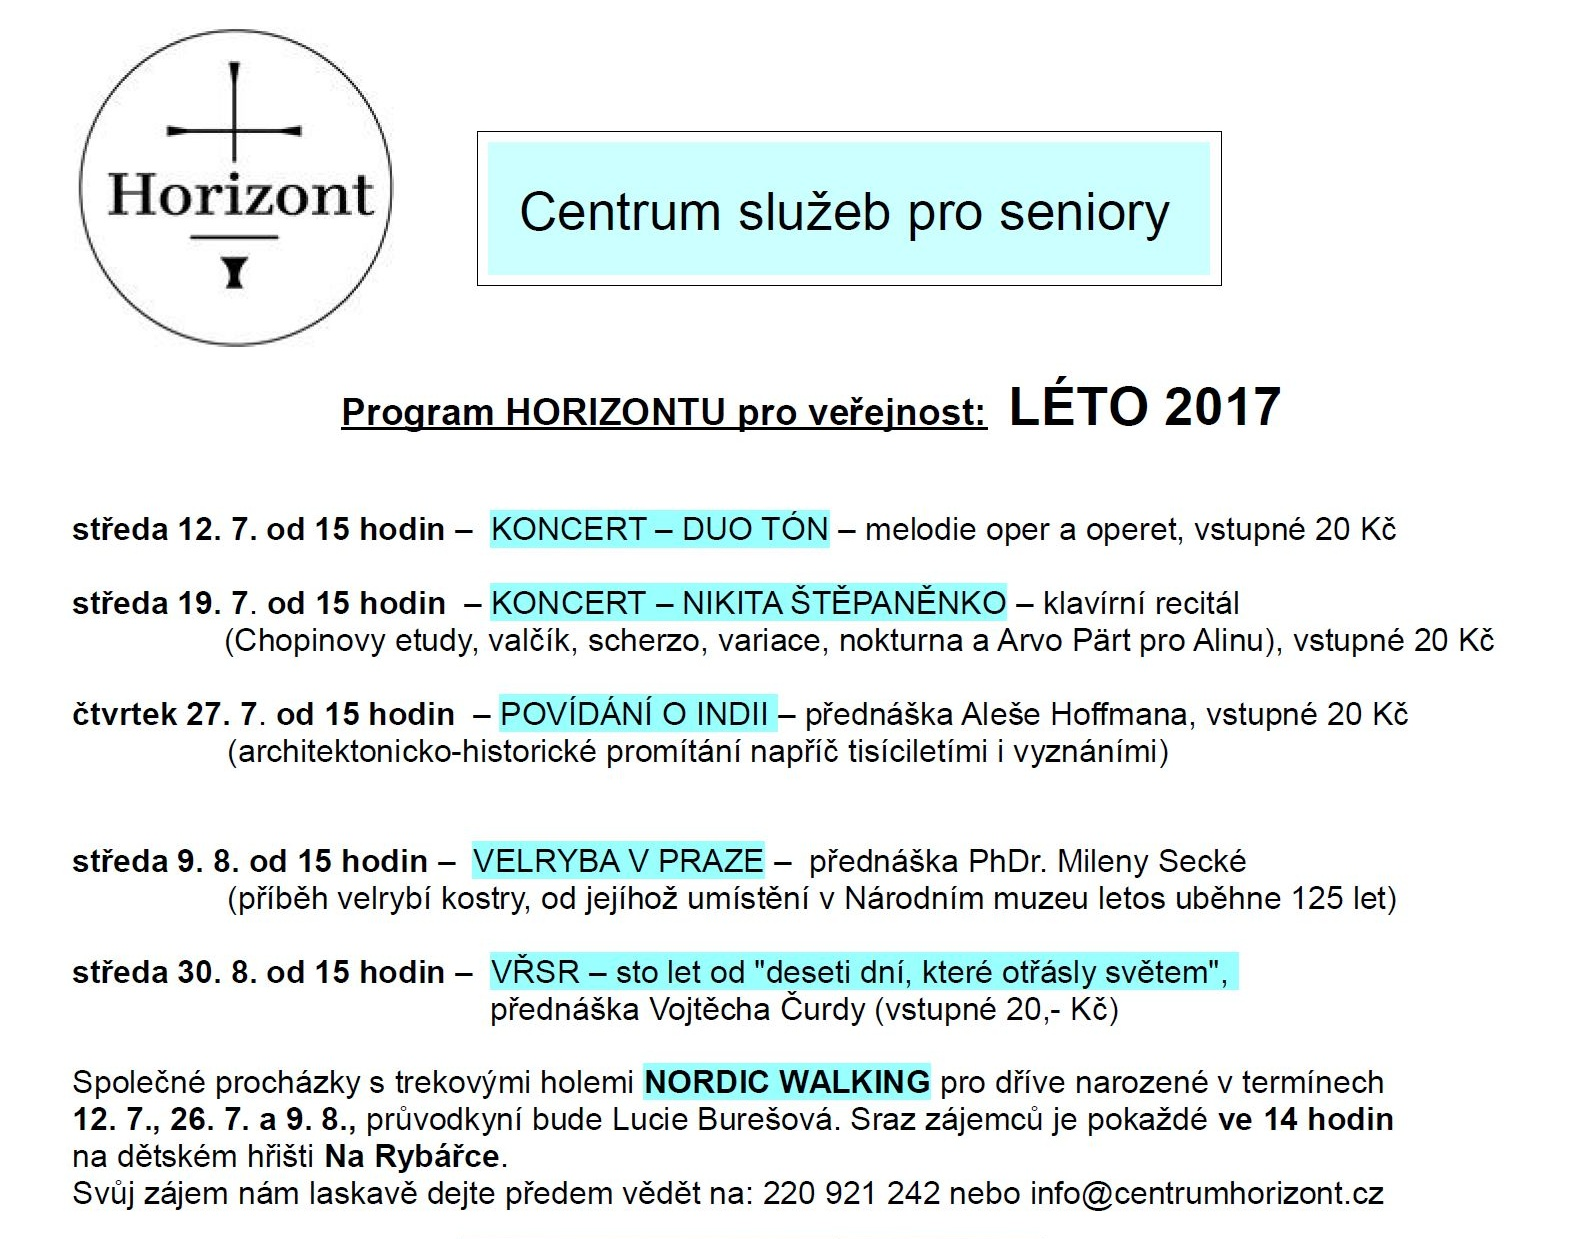 Program HORIZONTU na léto 2017